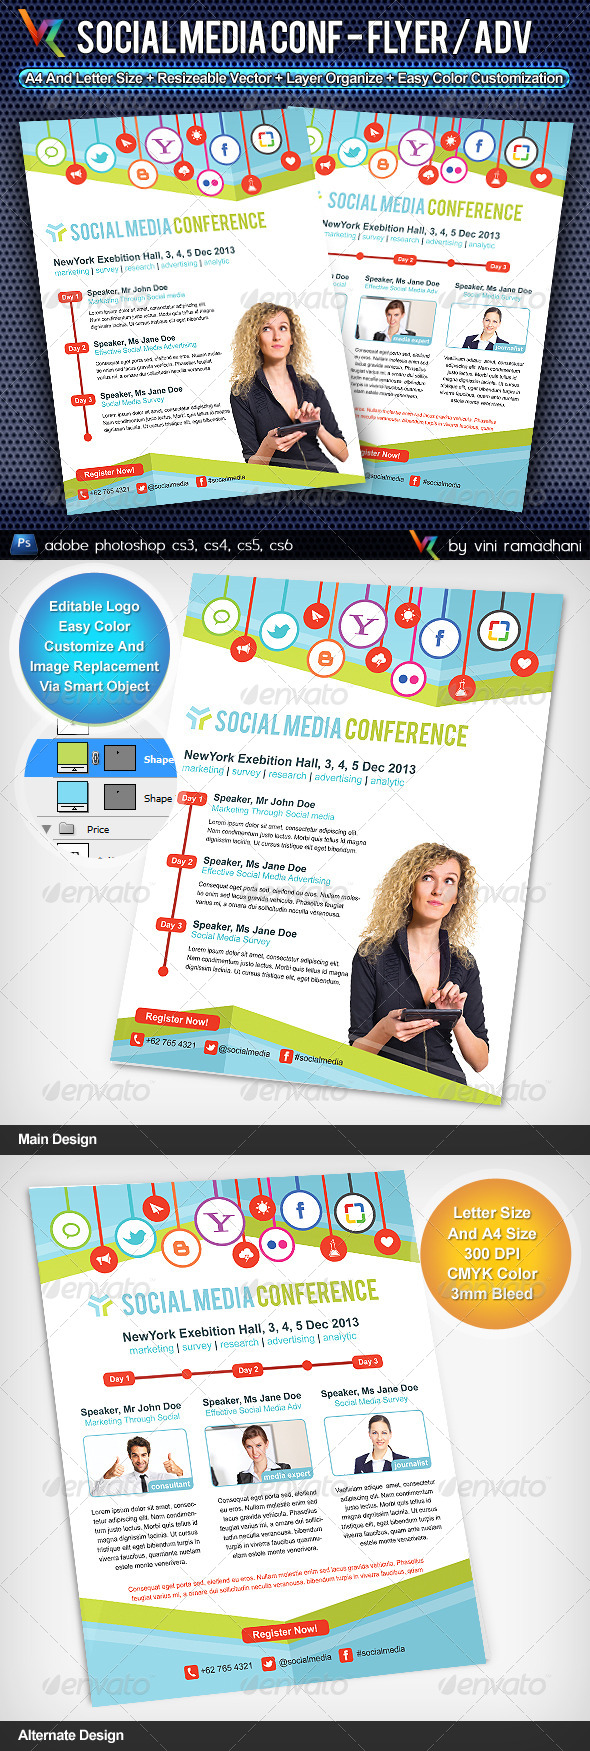 GraphicRiver Social Media Conference Flyer Or Advertising 4347058